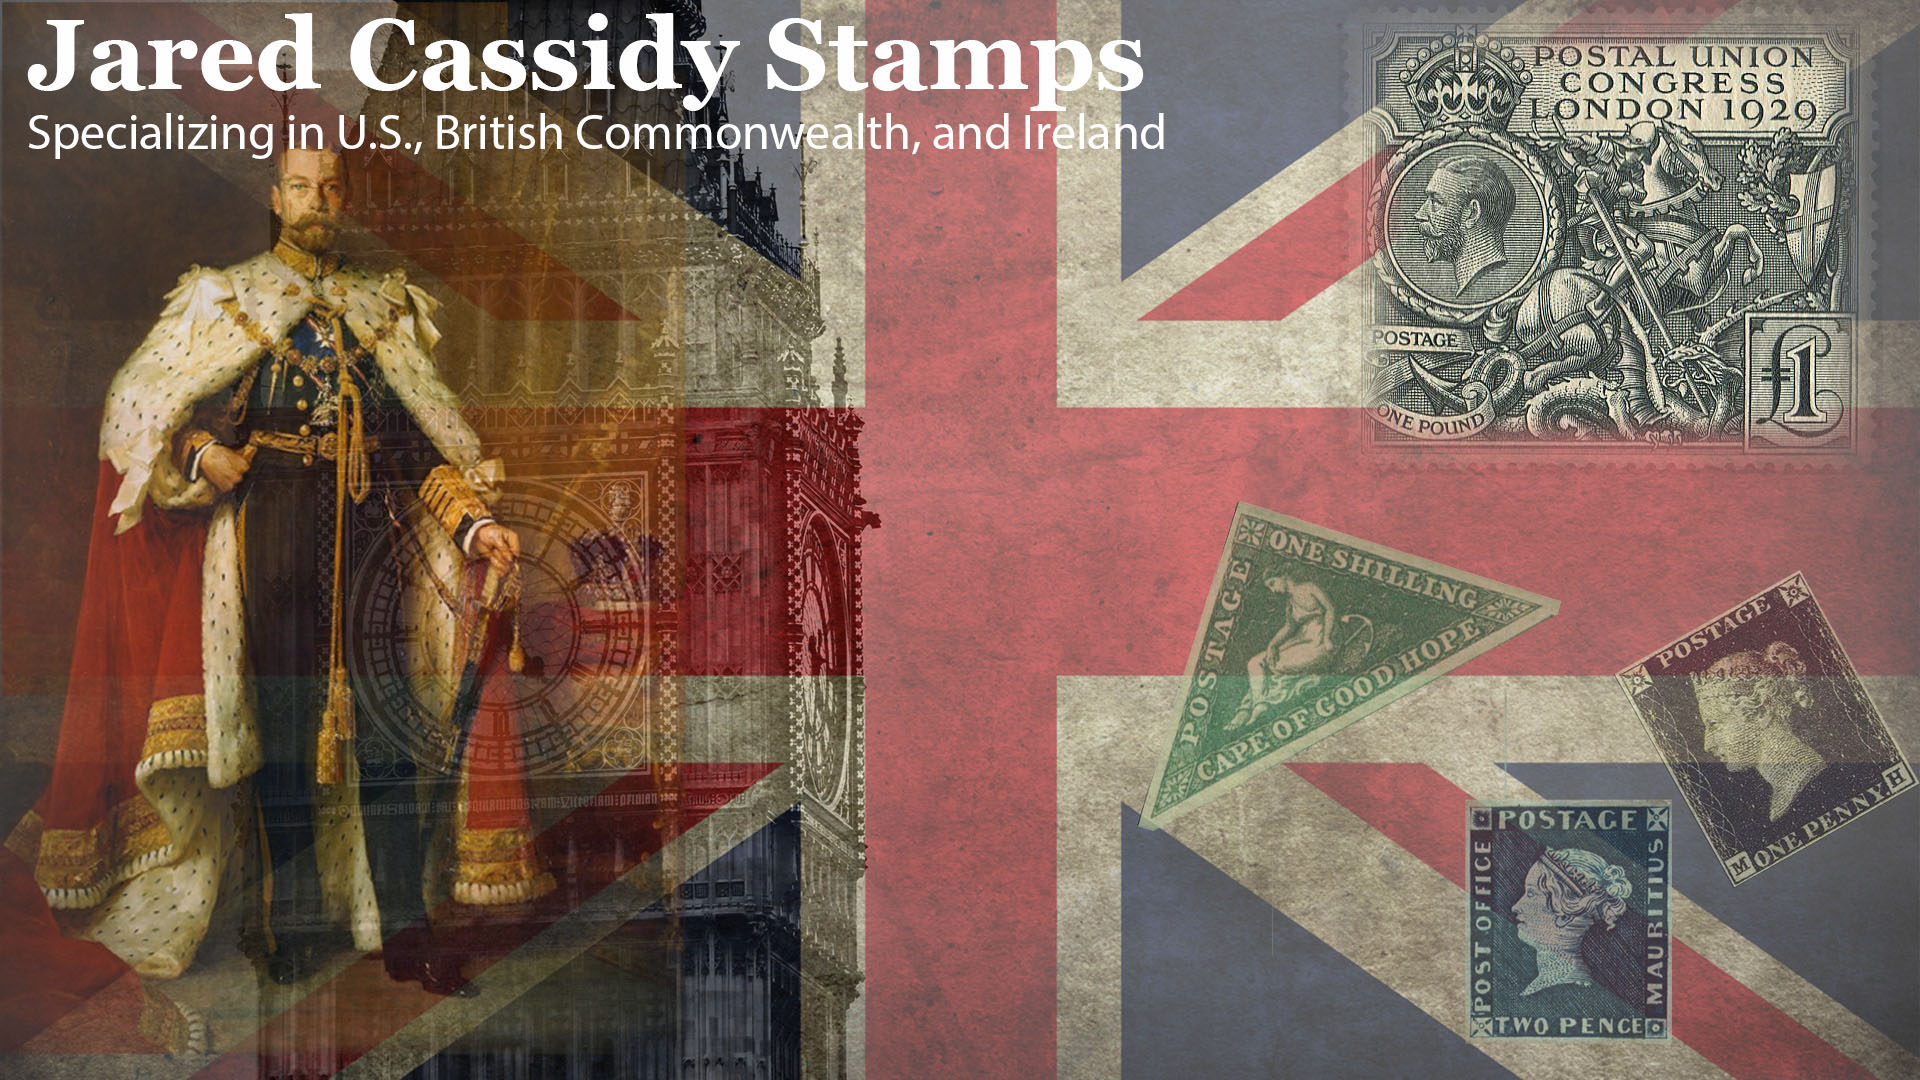 Jared Cassidy Stamps